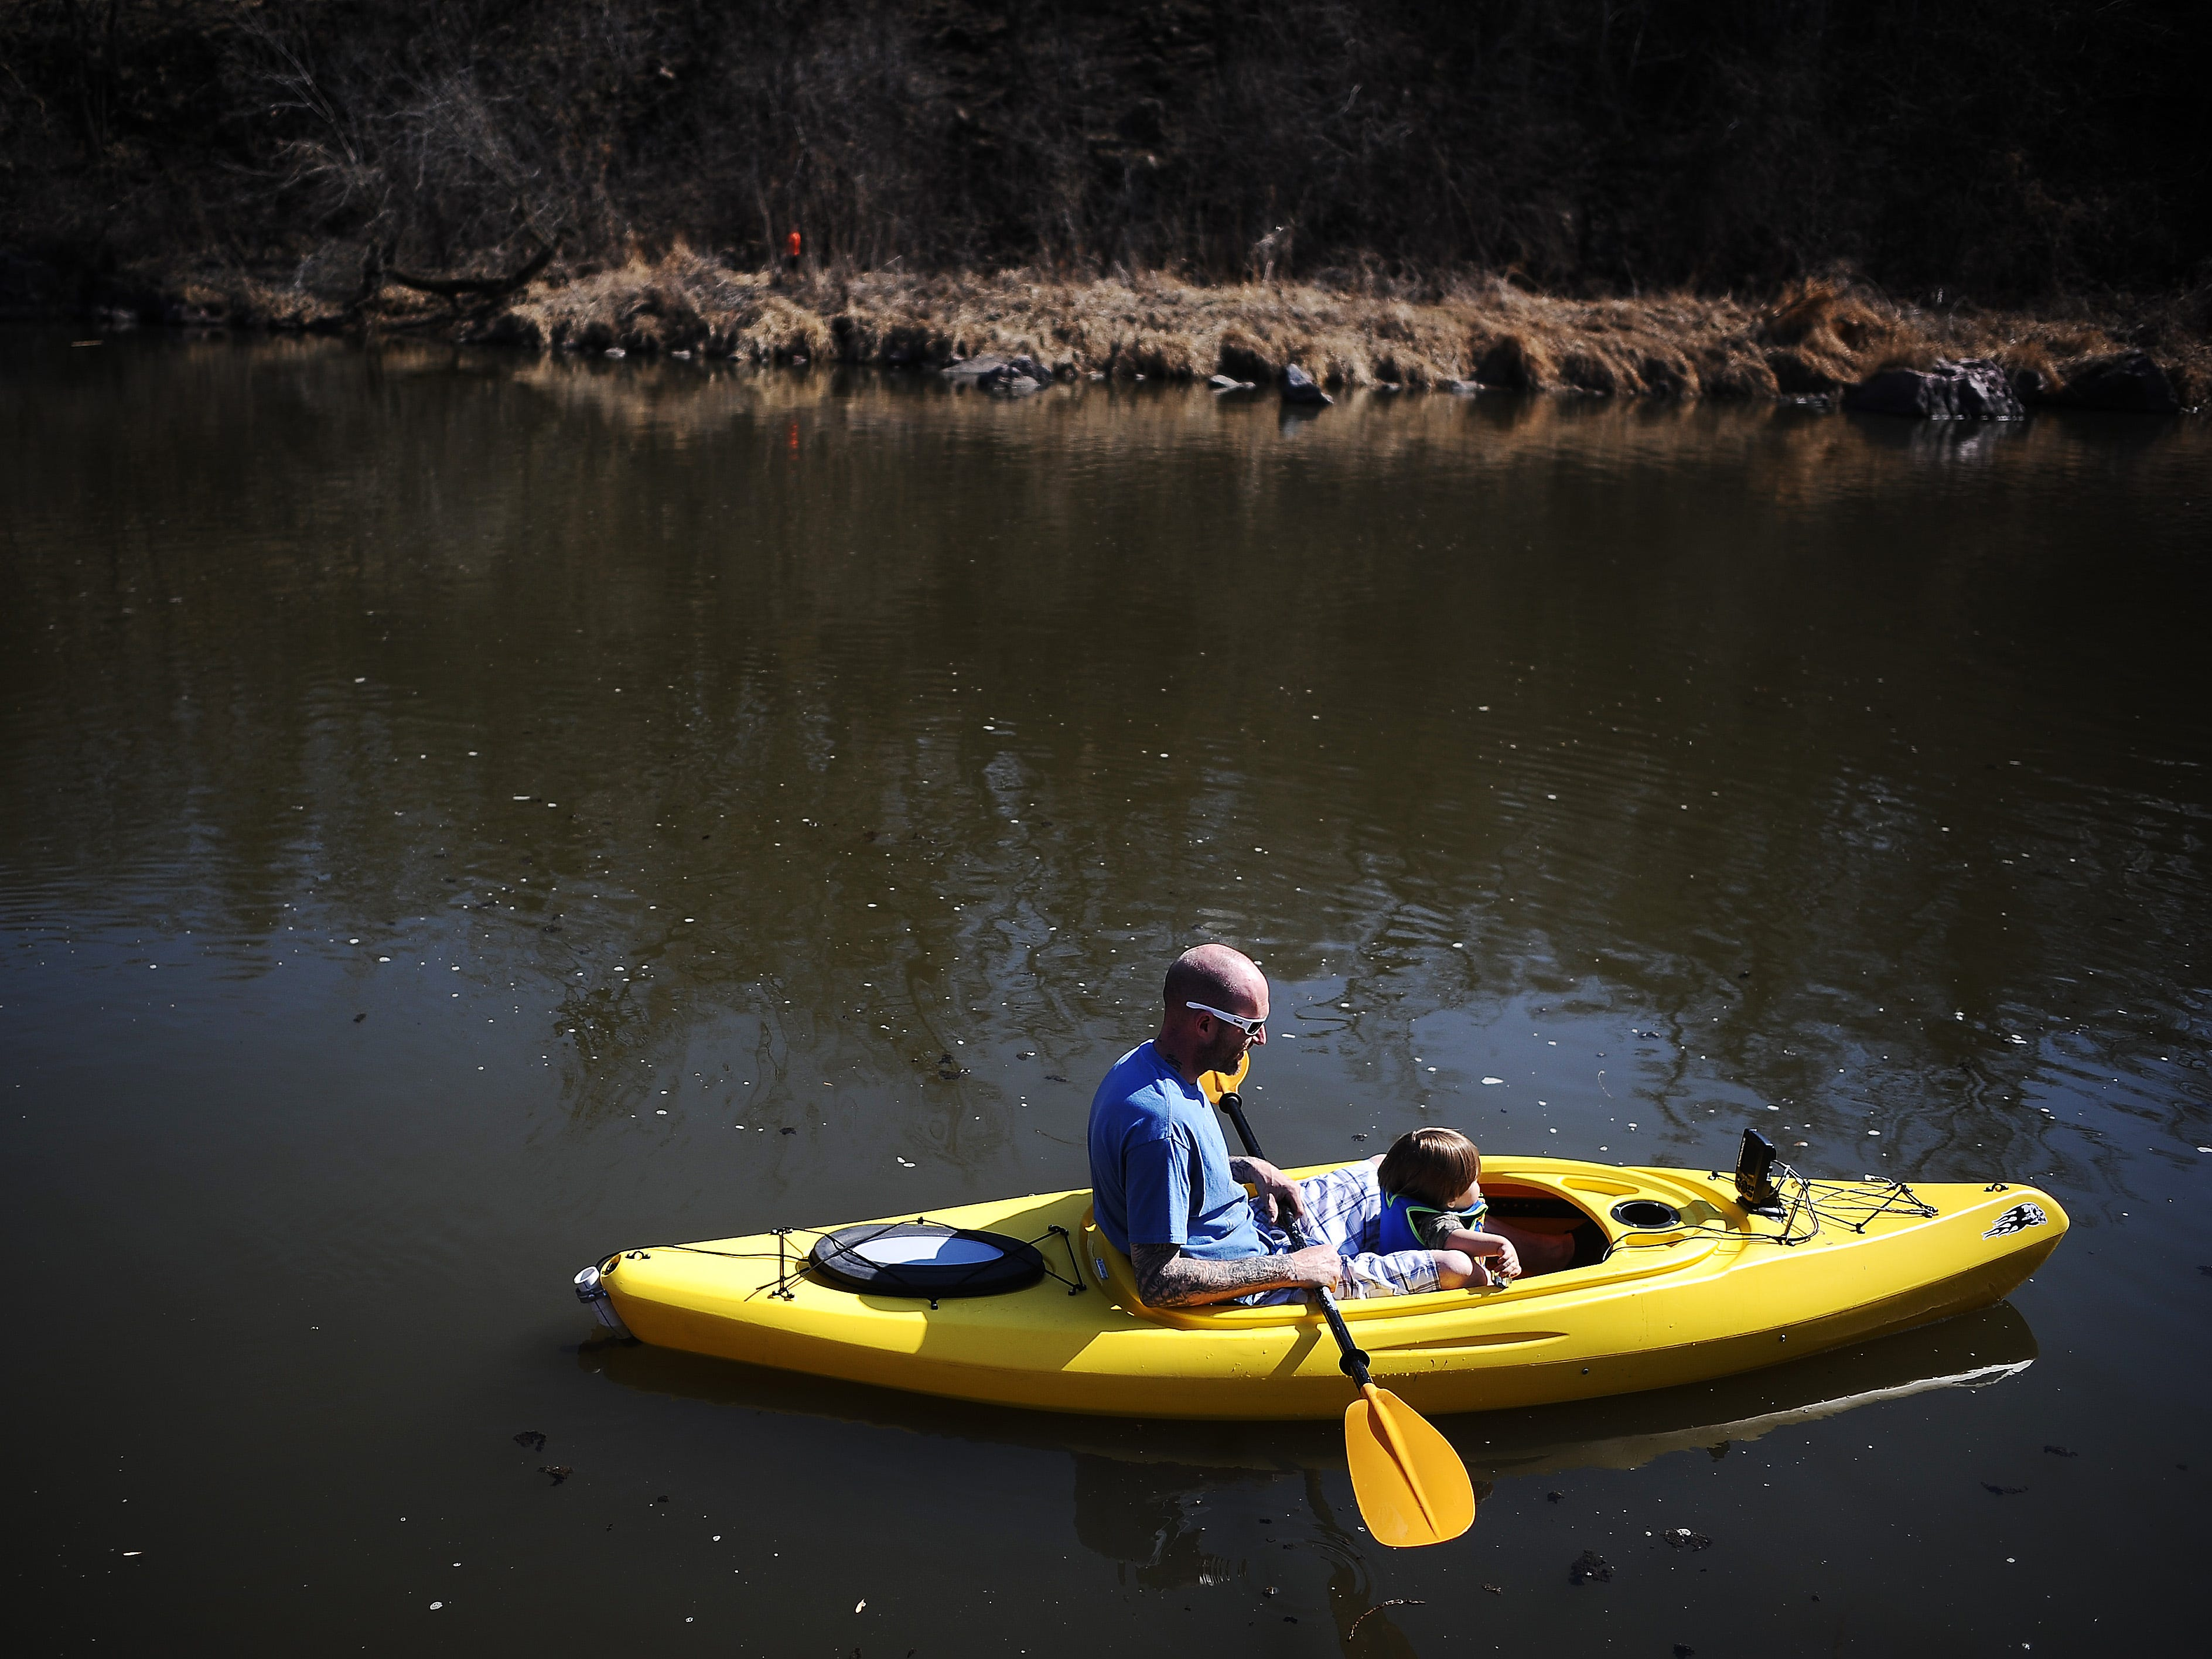 Jason Story and 1-year-old Micah Story kayak through Split Rock Creek on Sunday, April 6, 2014, at Palisades State Park near Garretson, S.D. According to the National Weather Service in Sioux Falls, temperatures on Sunday were as high as 68 degrees.